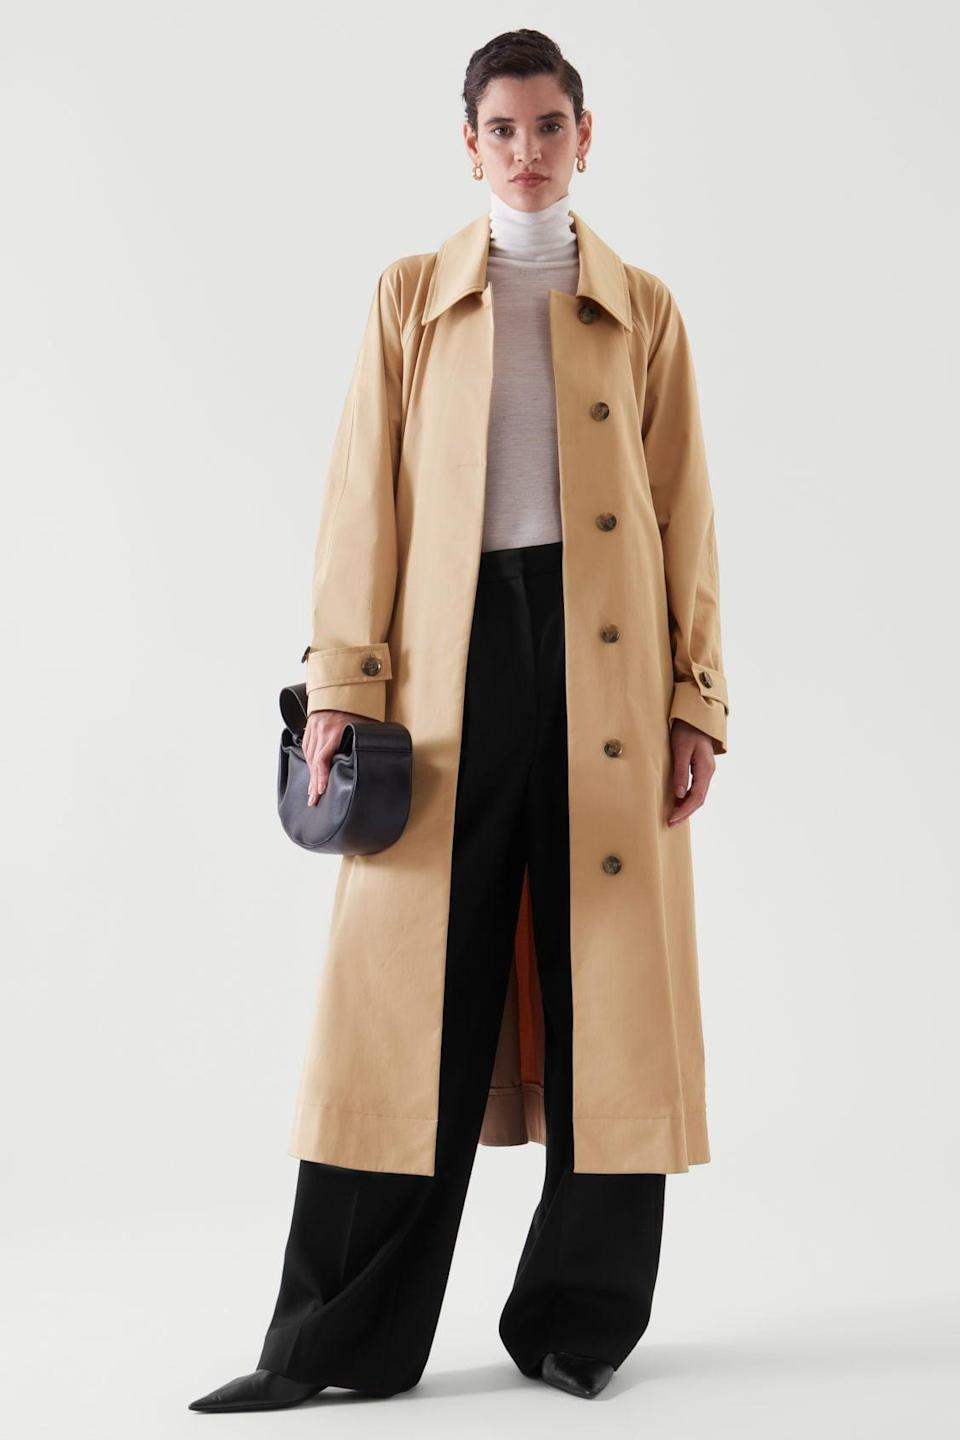 <p>Meeting the in-laws? Or looking to impress a first date? This <span>COS Oversize Trench Coat</span> ($250) will exude confidence and femininity. From the construction to the silhouette, it looks well-made.</p>